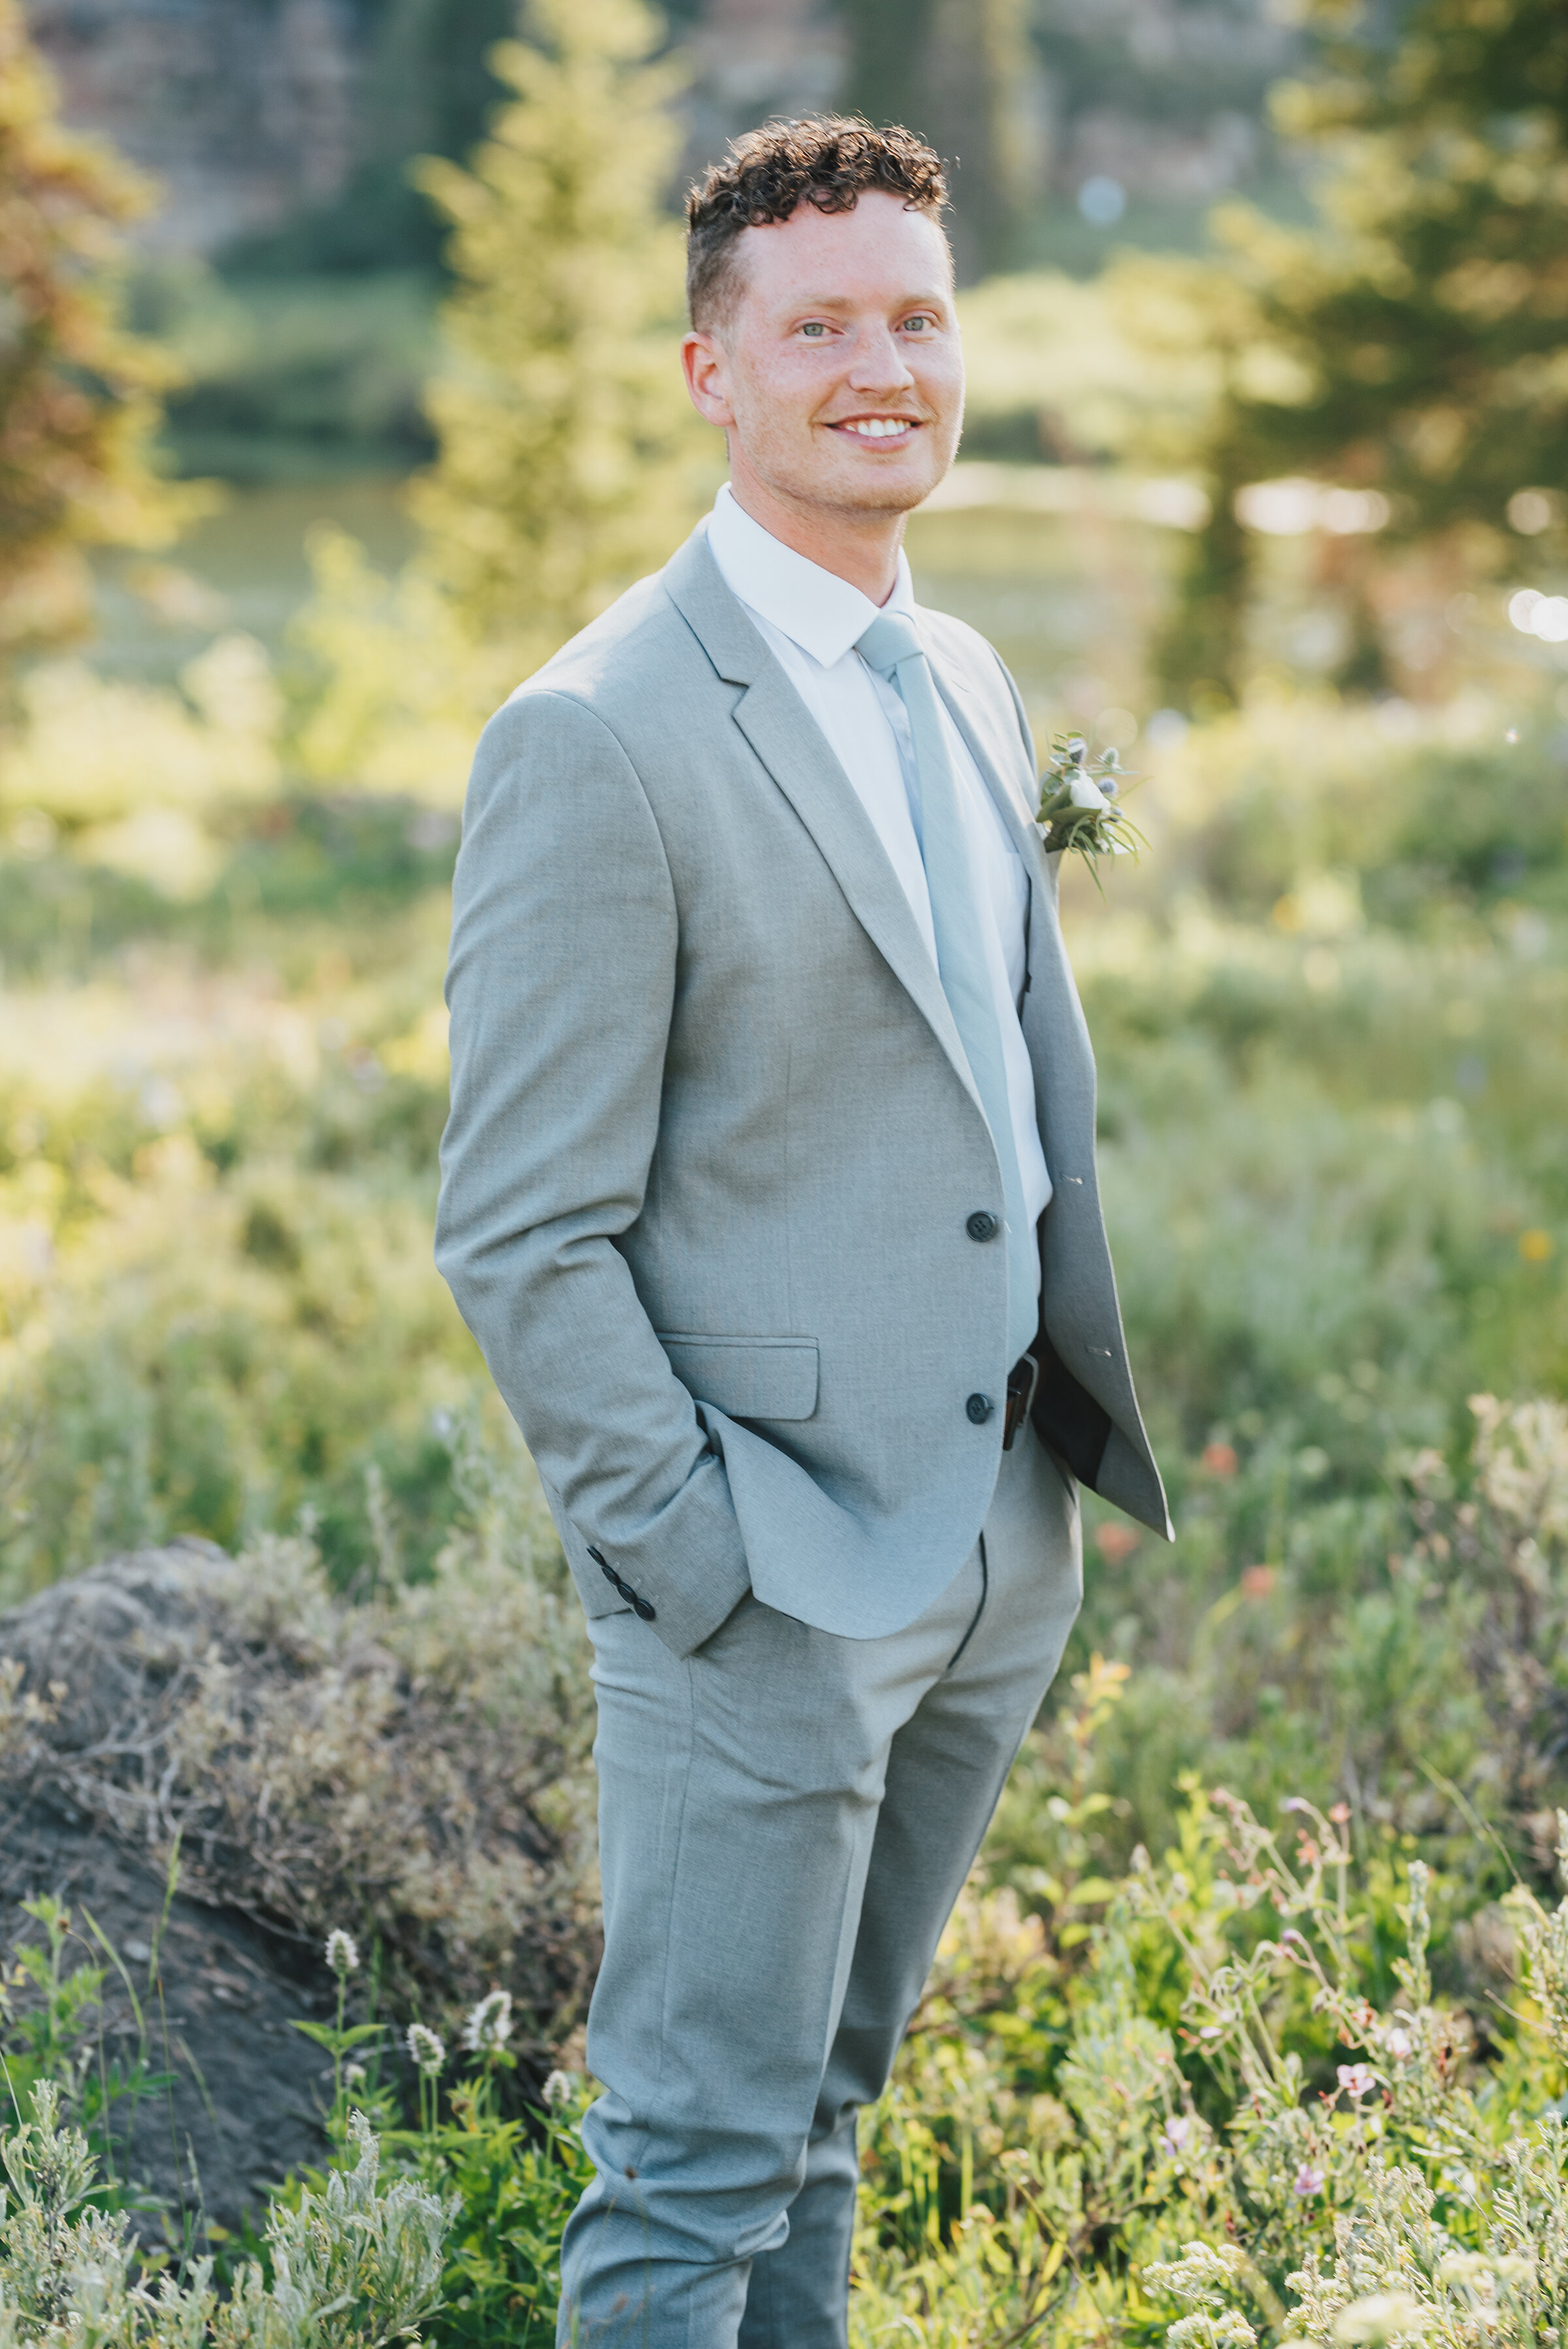 Handsome groom in grey suit surrounded by wild flowers for his formals up Logan canyon. Kristi Alyse photography Logan Utah wedding photographer forest nature dreamy formals Logan canyon Tony Grove scenic bridals Northern Utah photographer Utah brides bride and groom Cache Valley #kristialysephotography #loganutahphotographer #tonygrove #logancanyon #utahweddingphotographer #bridals #formals #wildflowers #northernutah #utahbrides